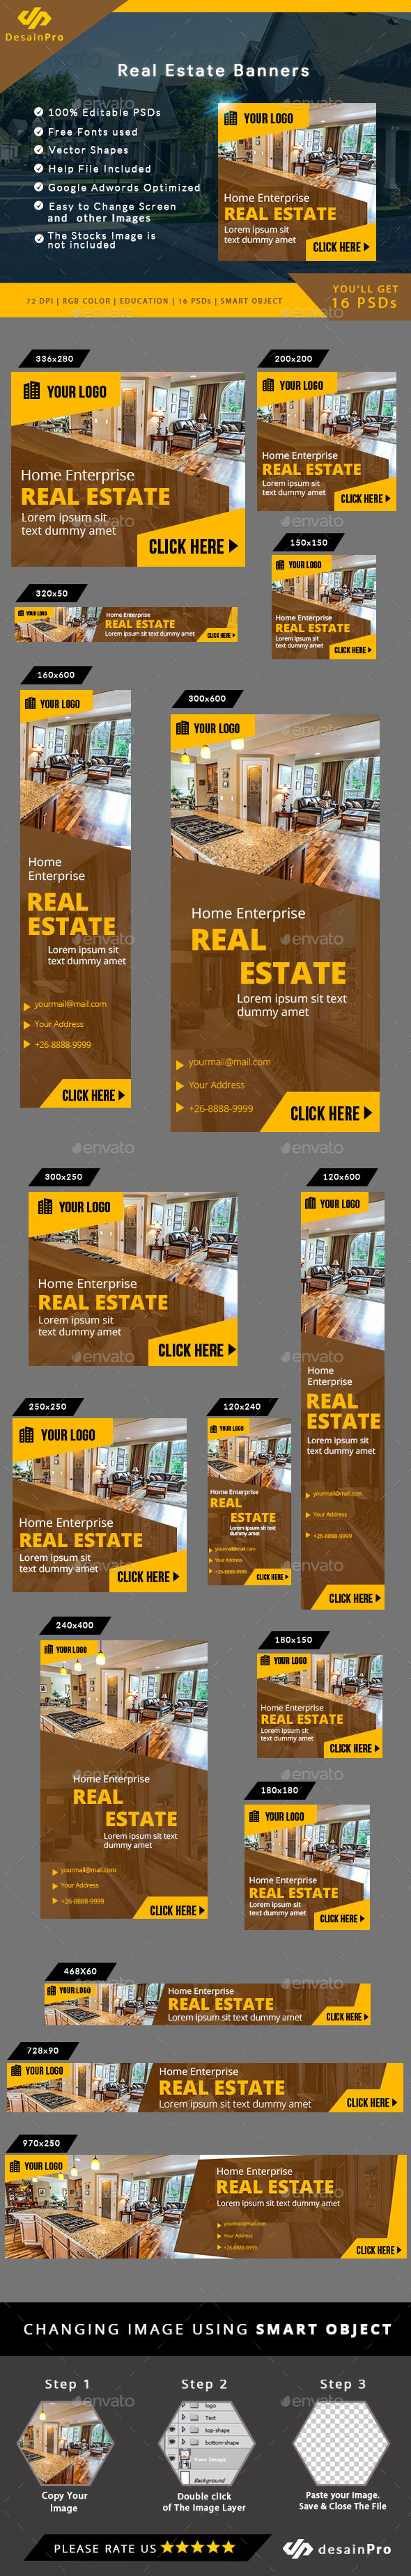 Real Estate Ad Banners - AR - Banners & Ads Web Elements